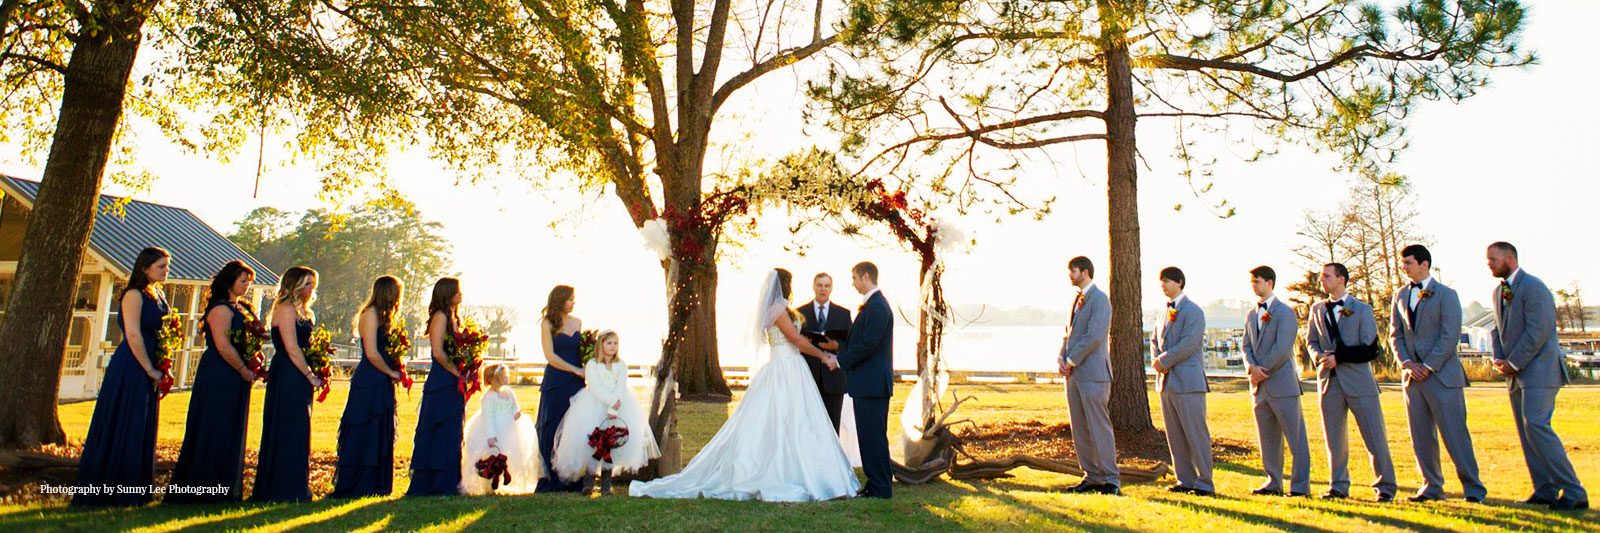 Lake Blackshear Weddings Wedding Gallery 1